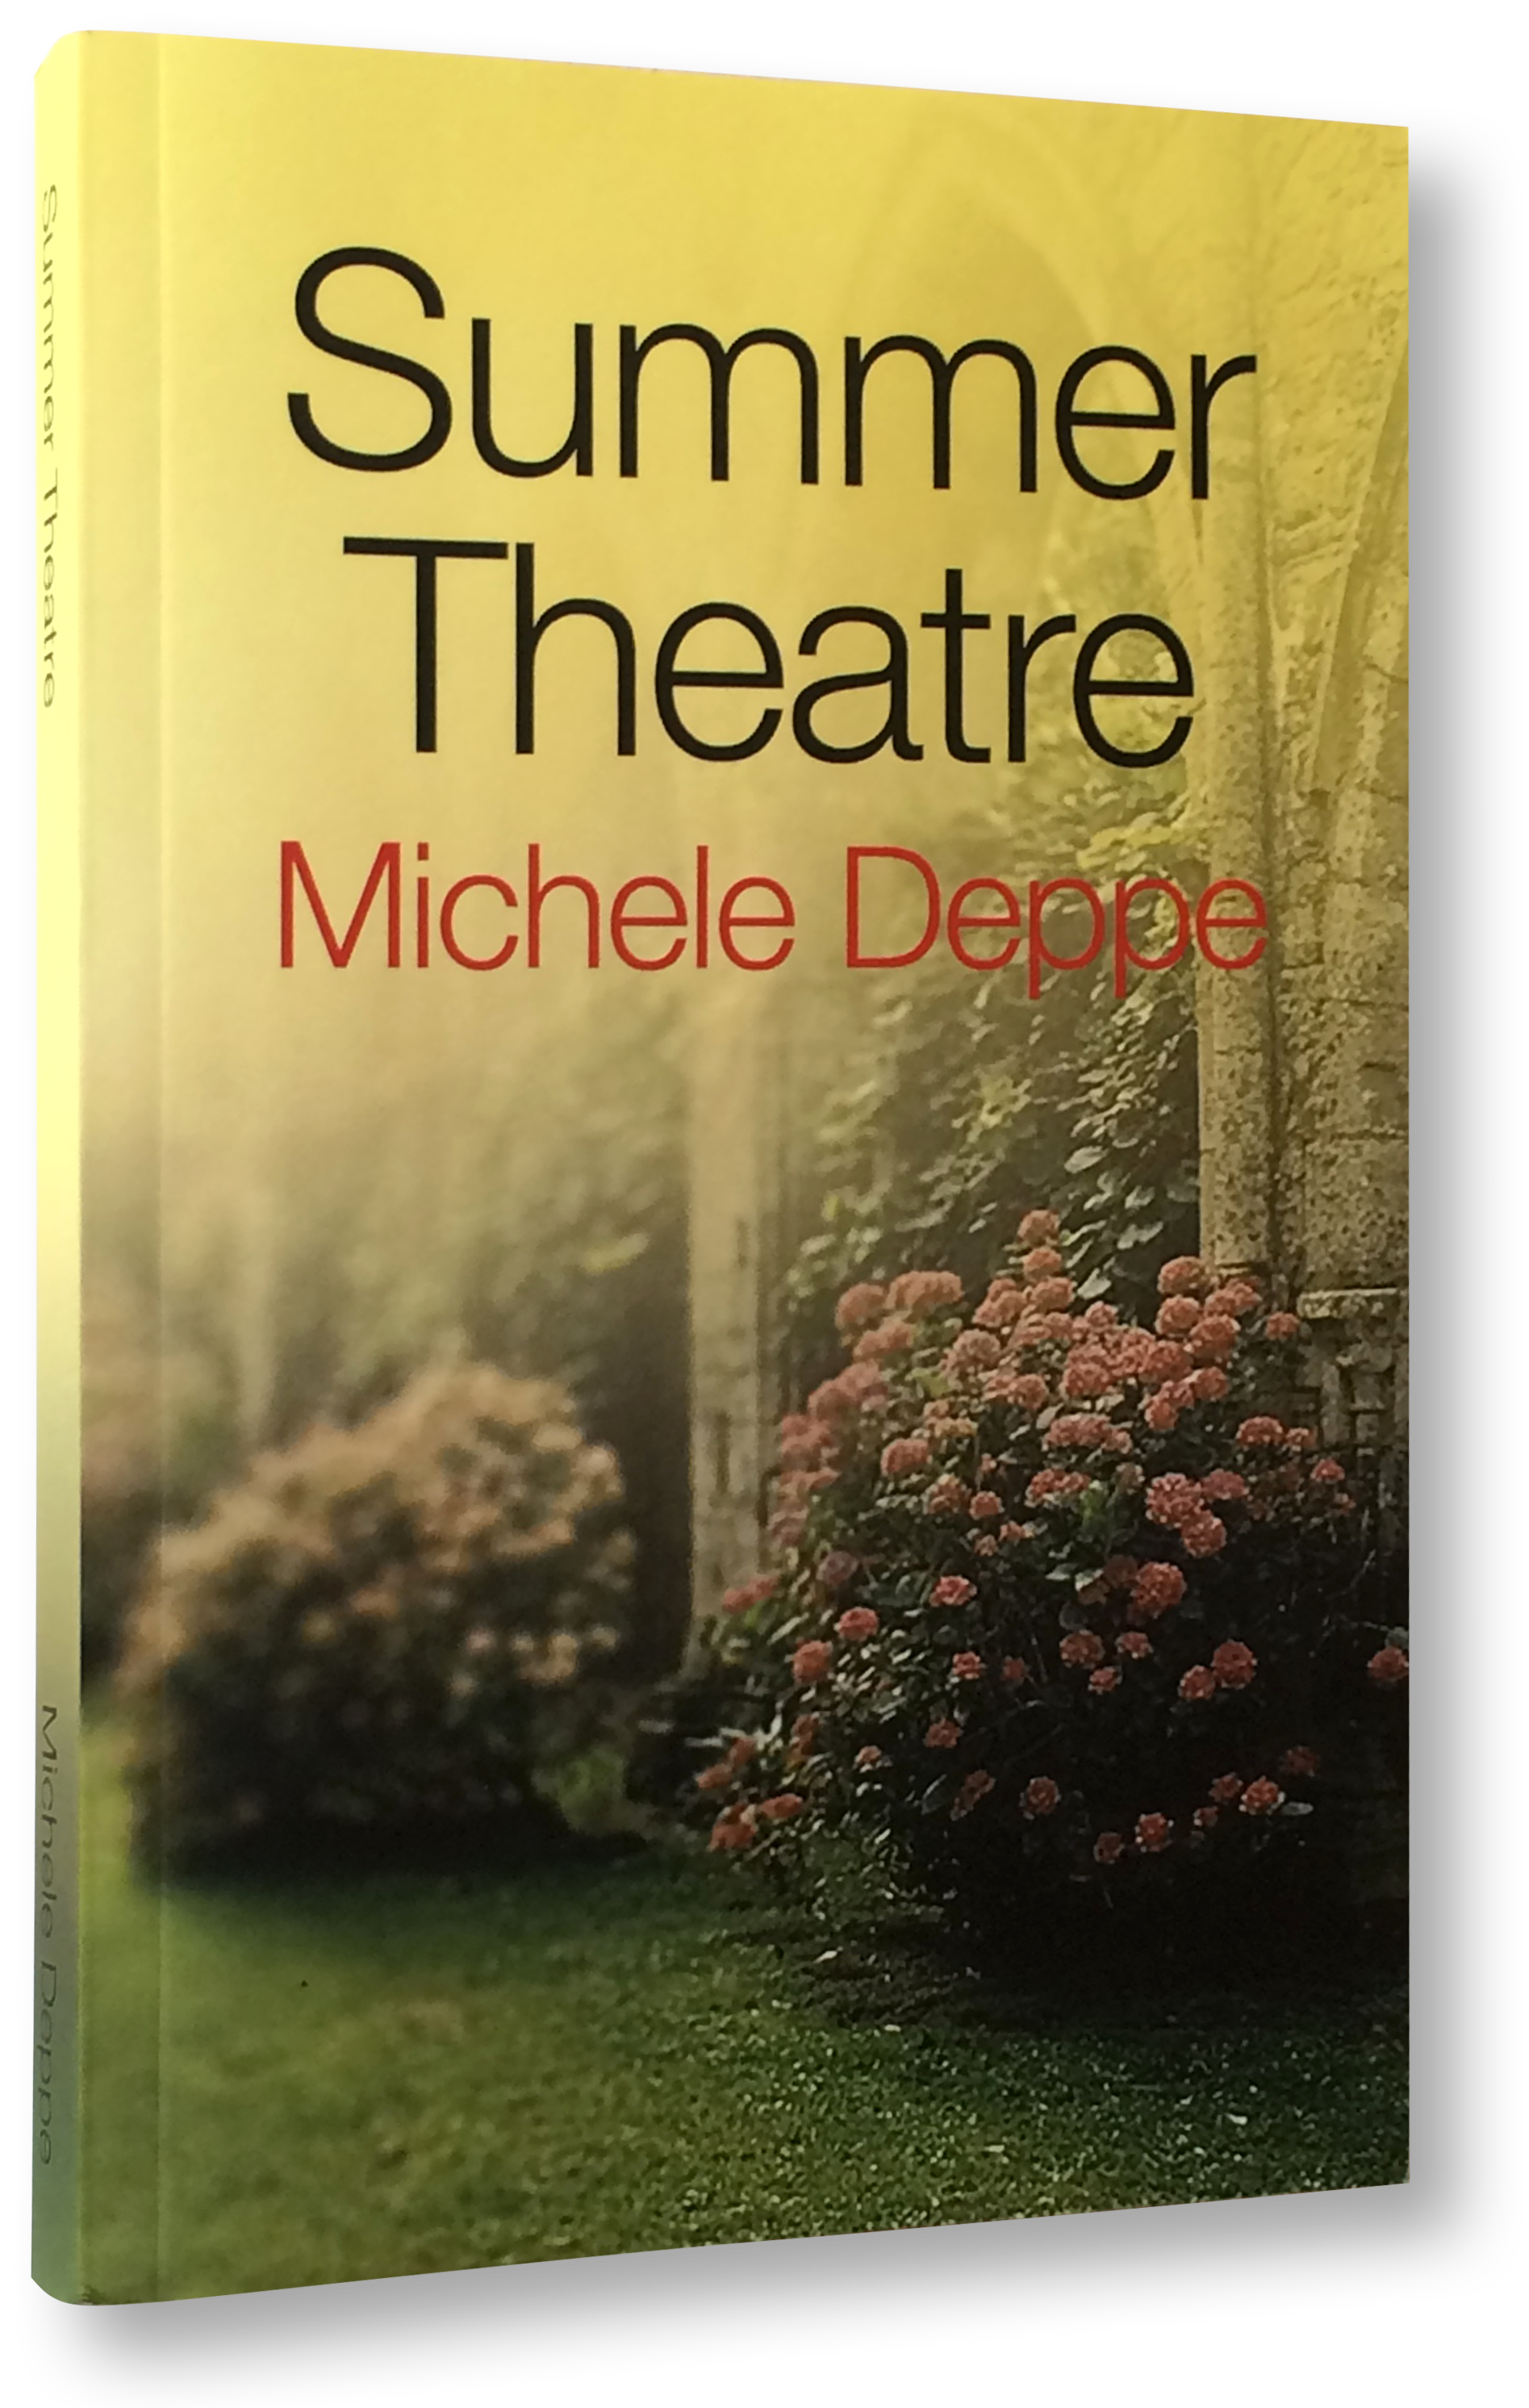 SummerTheatreBookPhoto.png